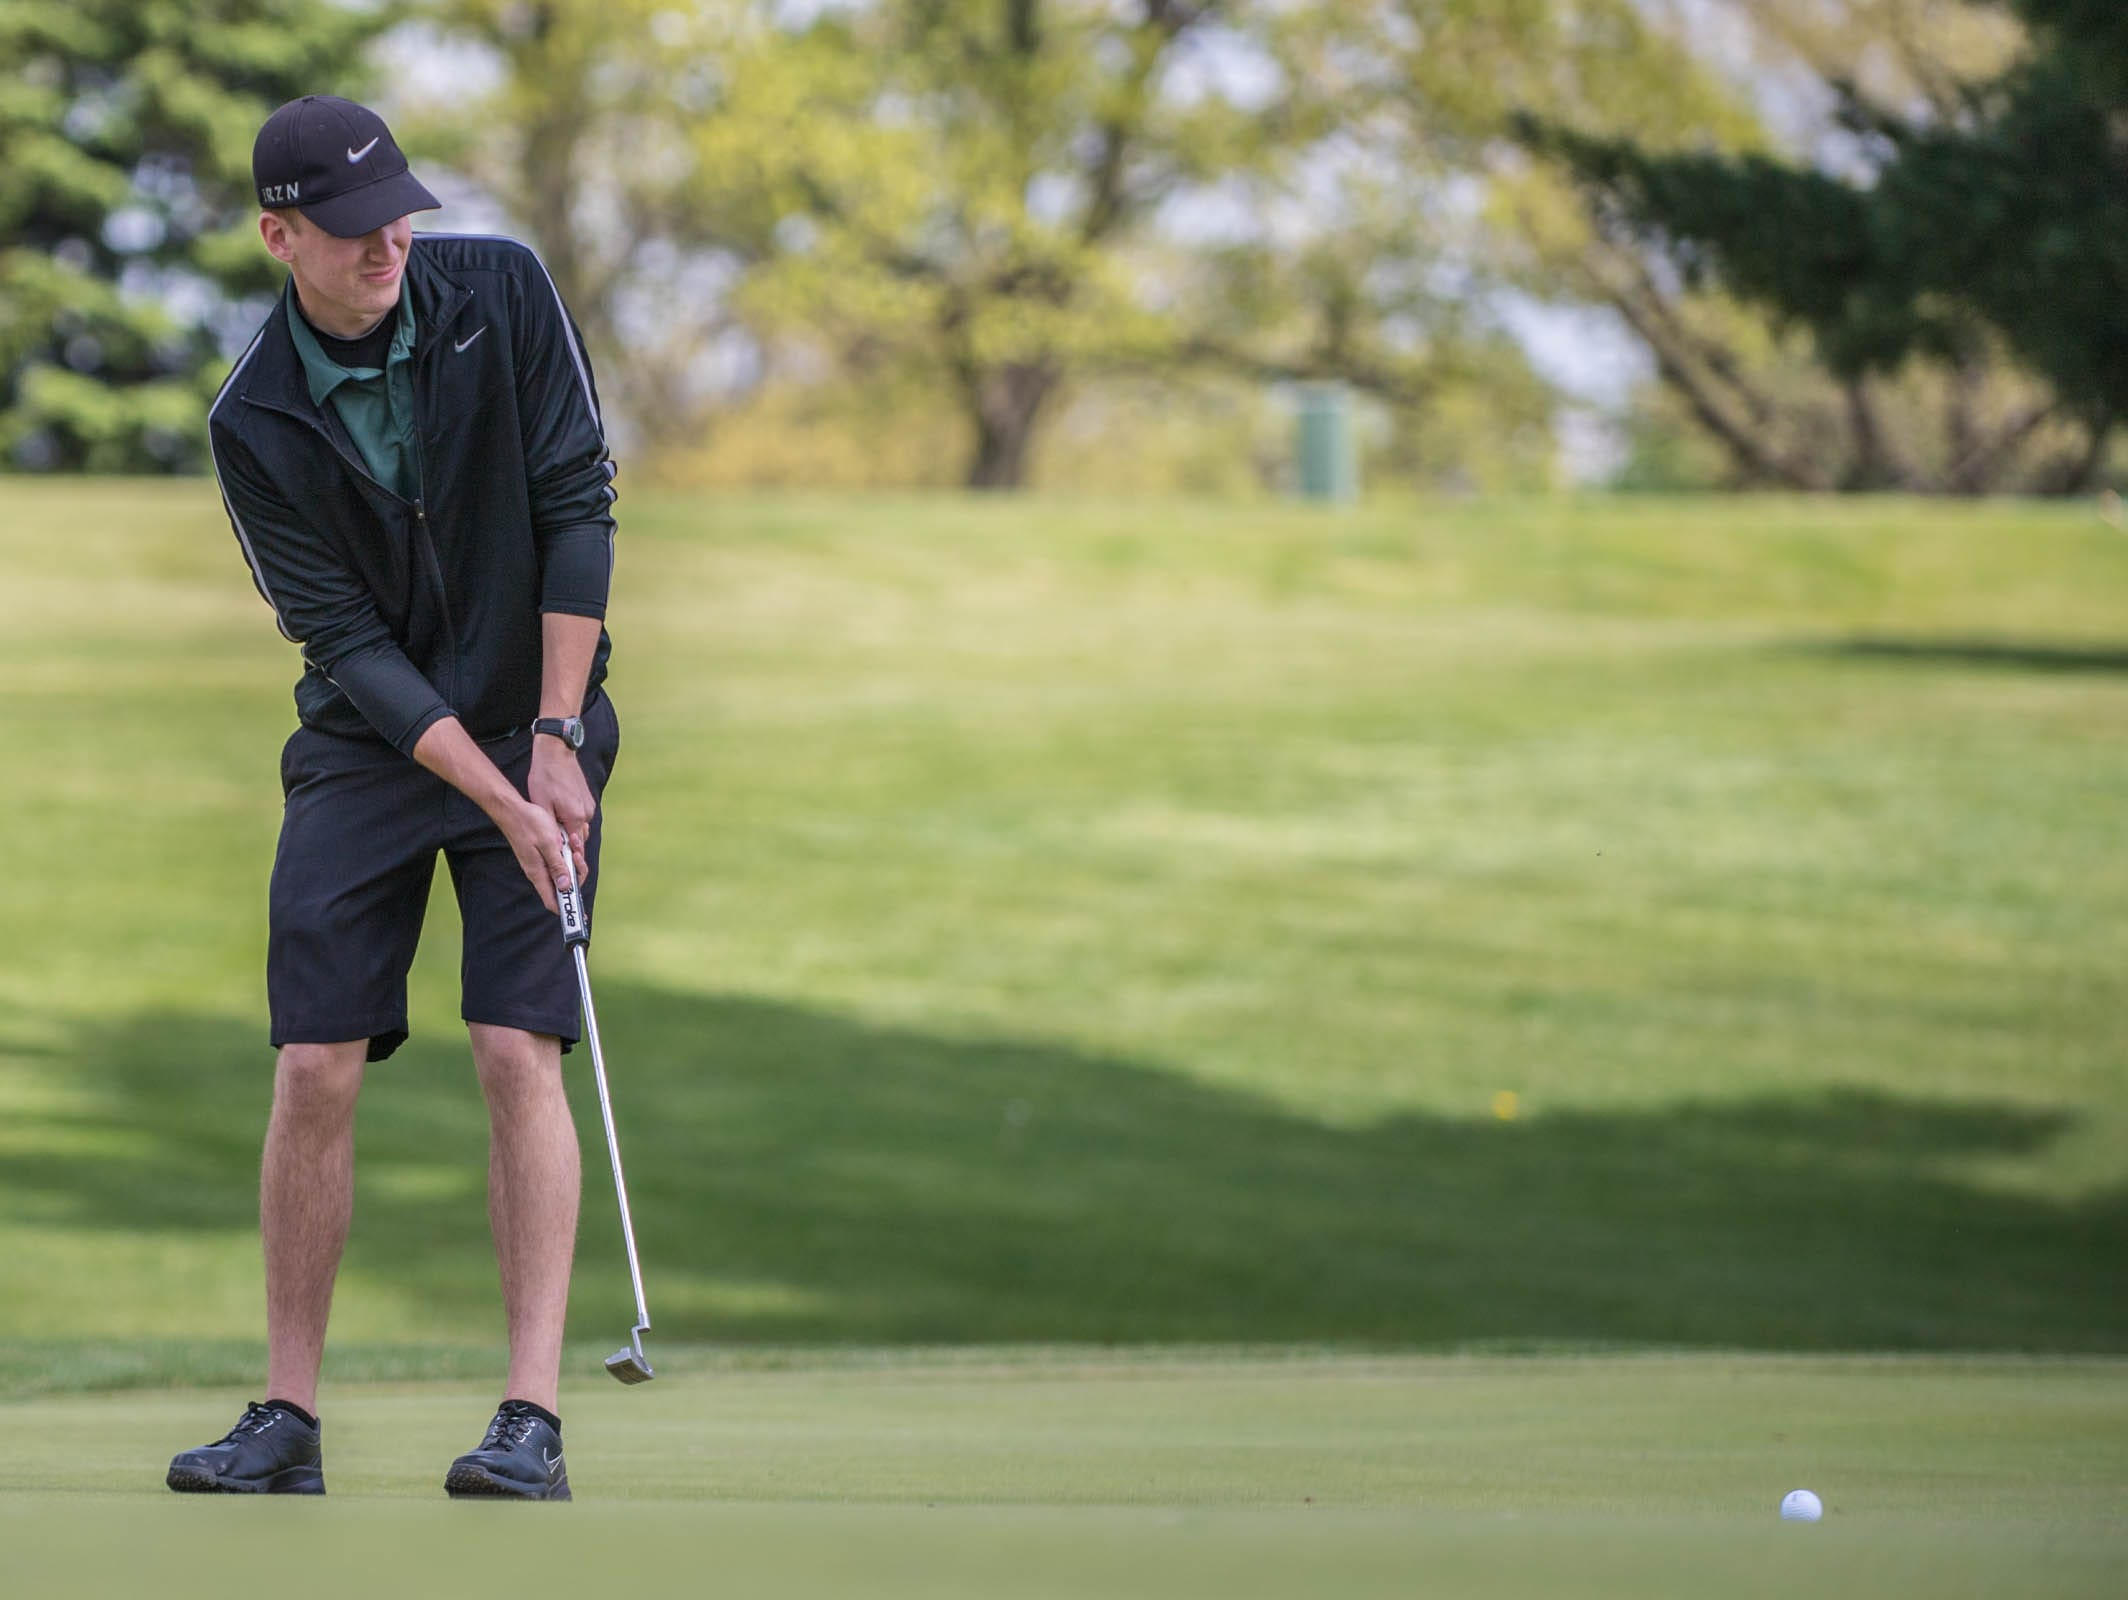 Pennfield senior Chase Williamson hits his putt during All-City Golf Tournament at Riverside Golf Club on Friday.